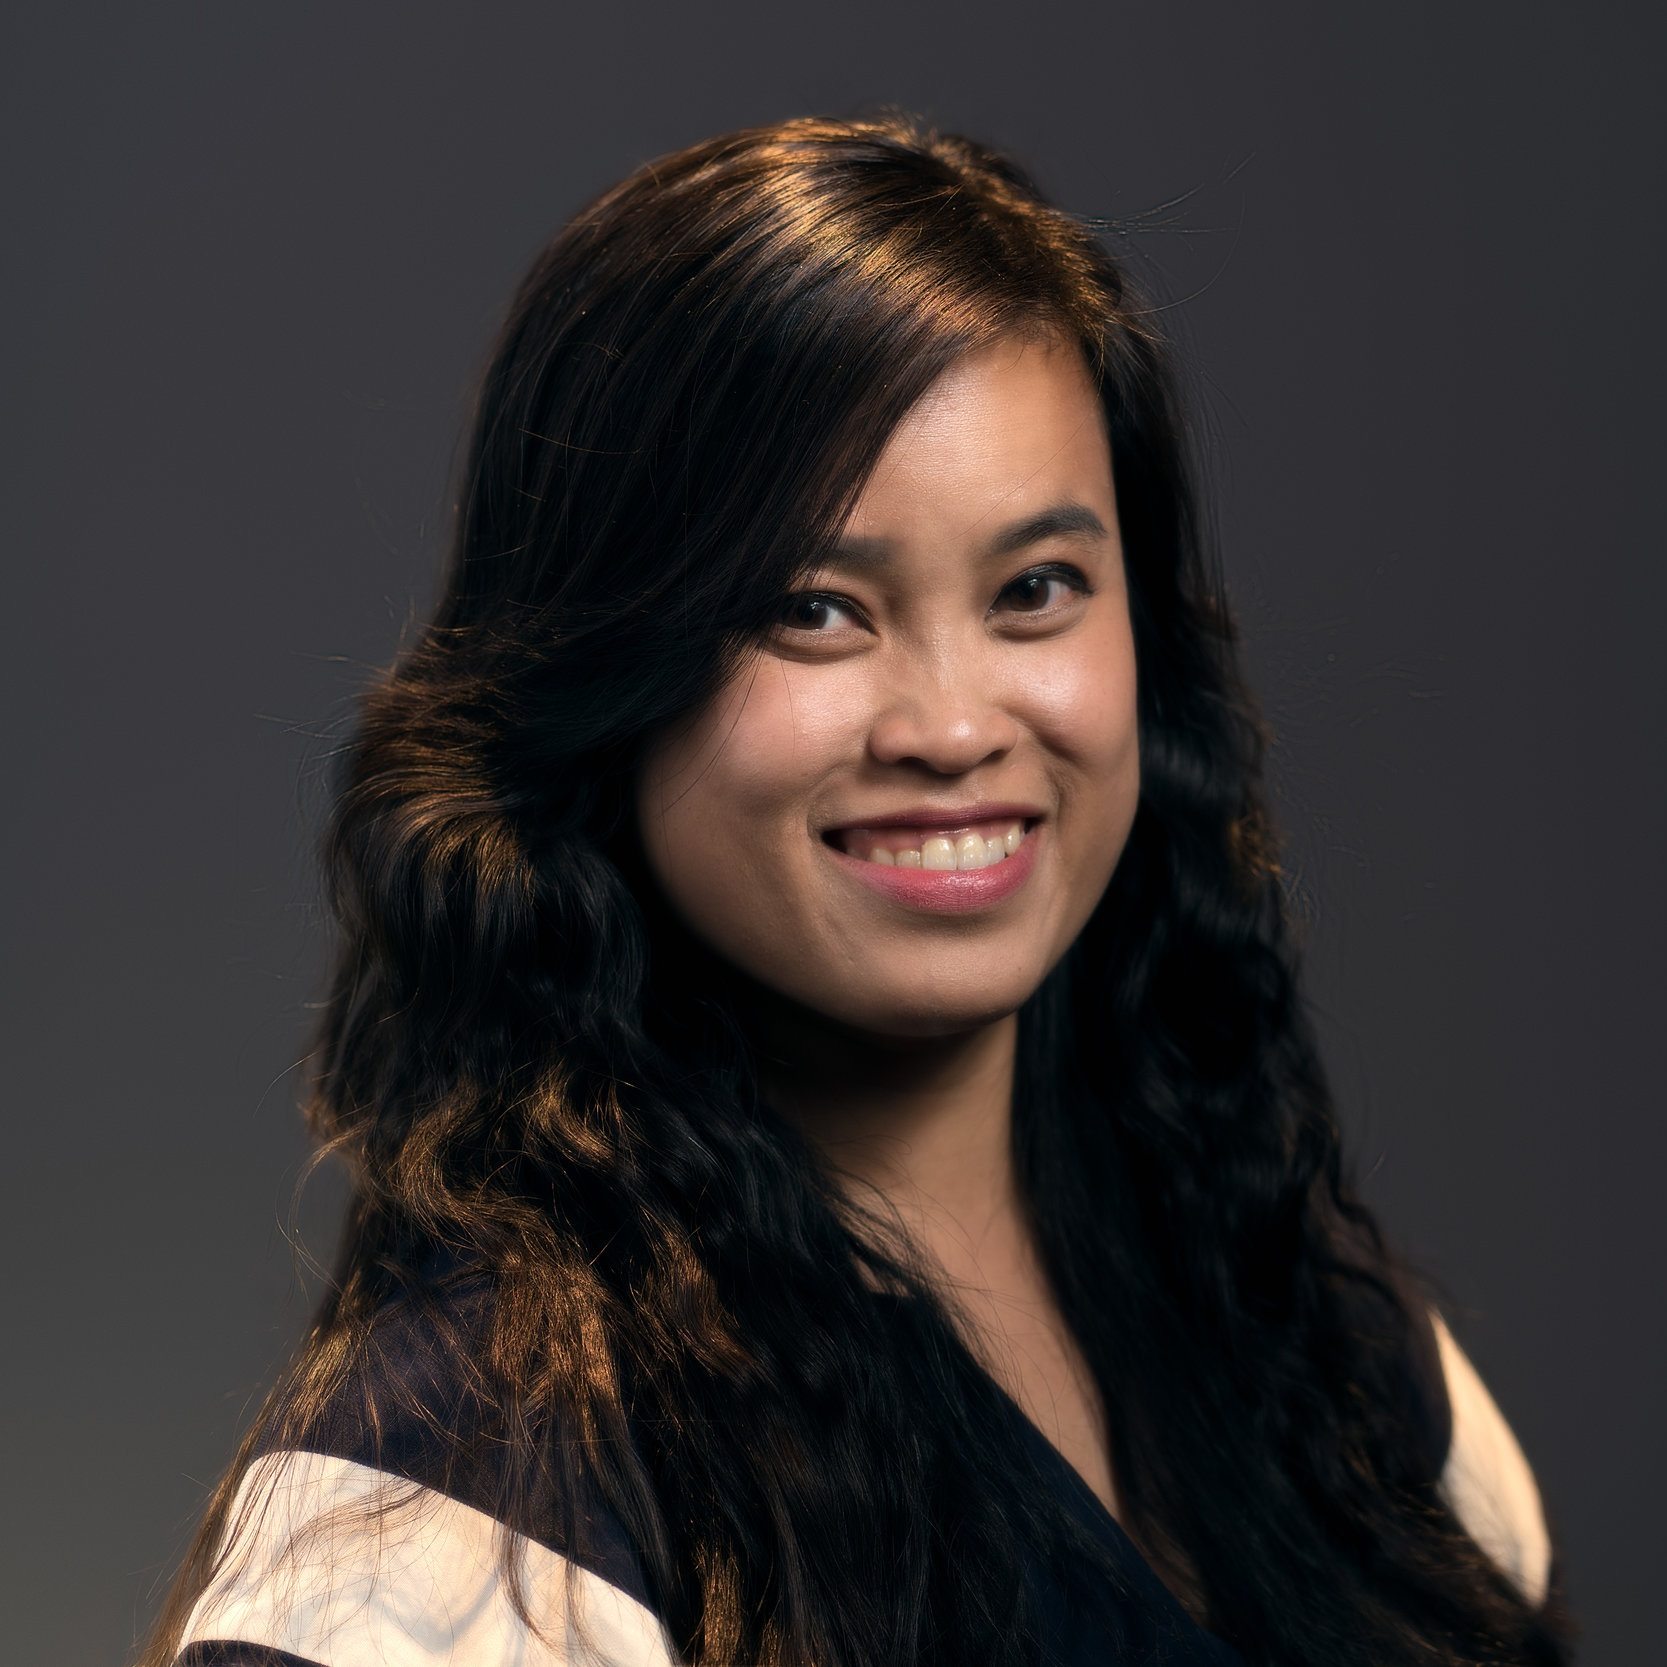 Thao Pham - Manager of Communications & Multimedia